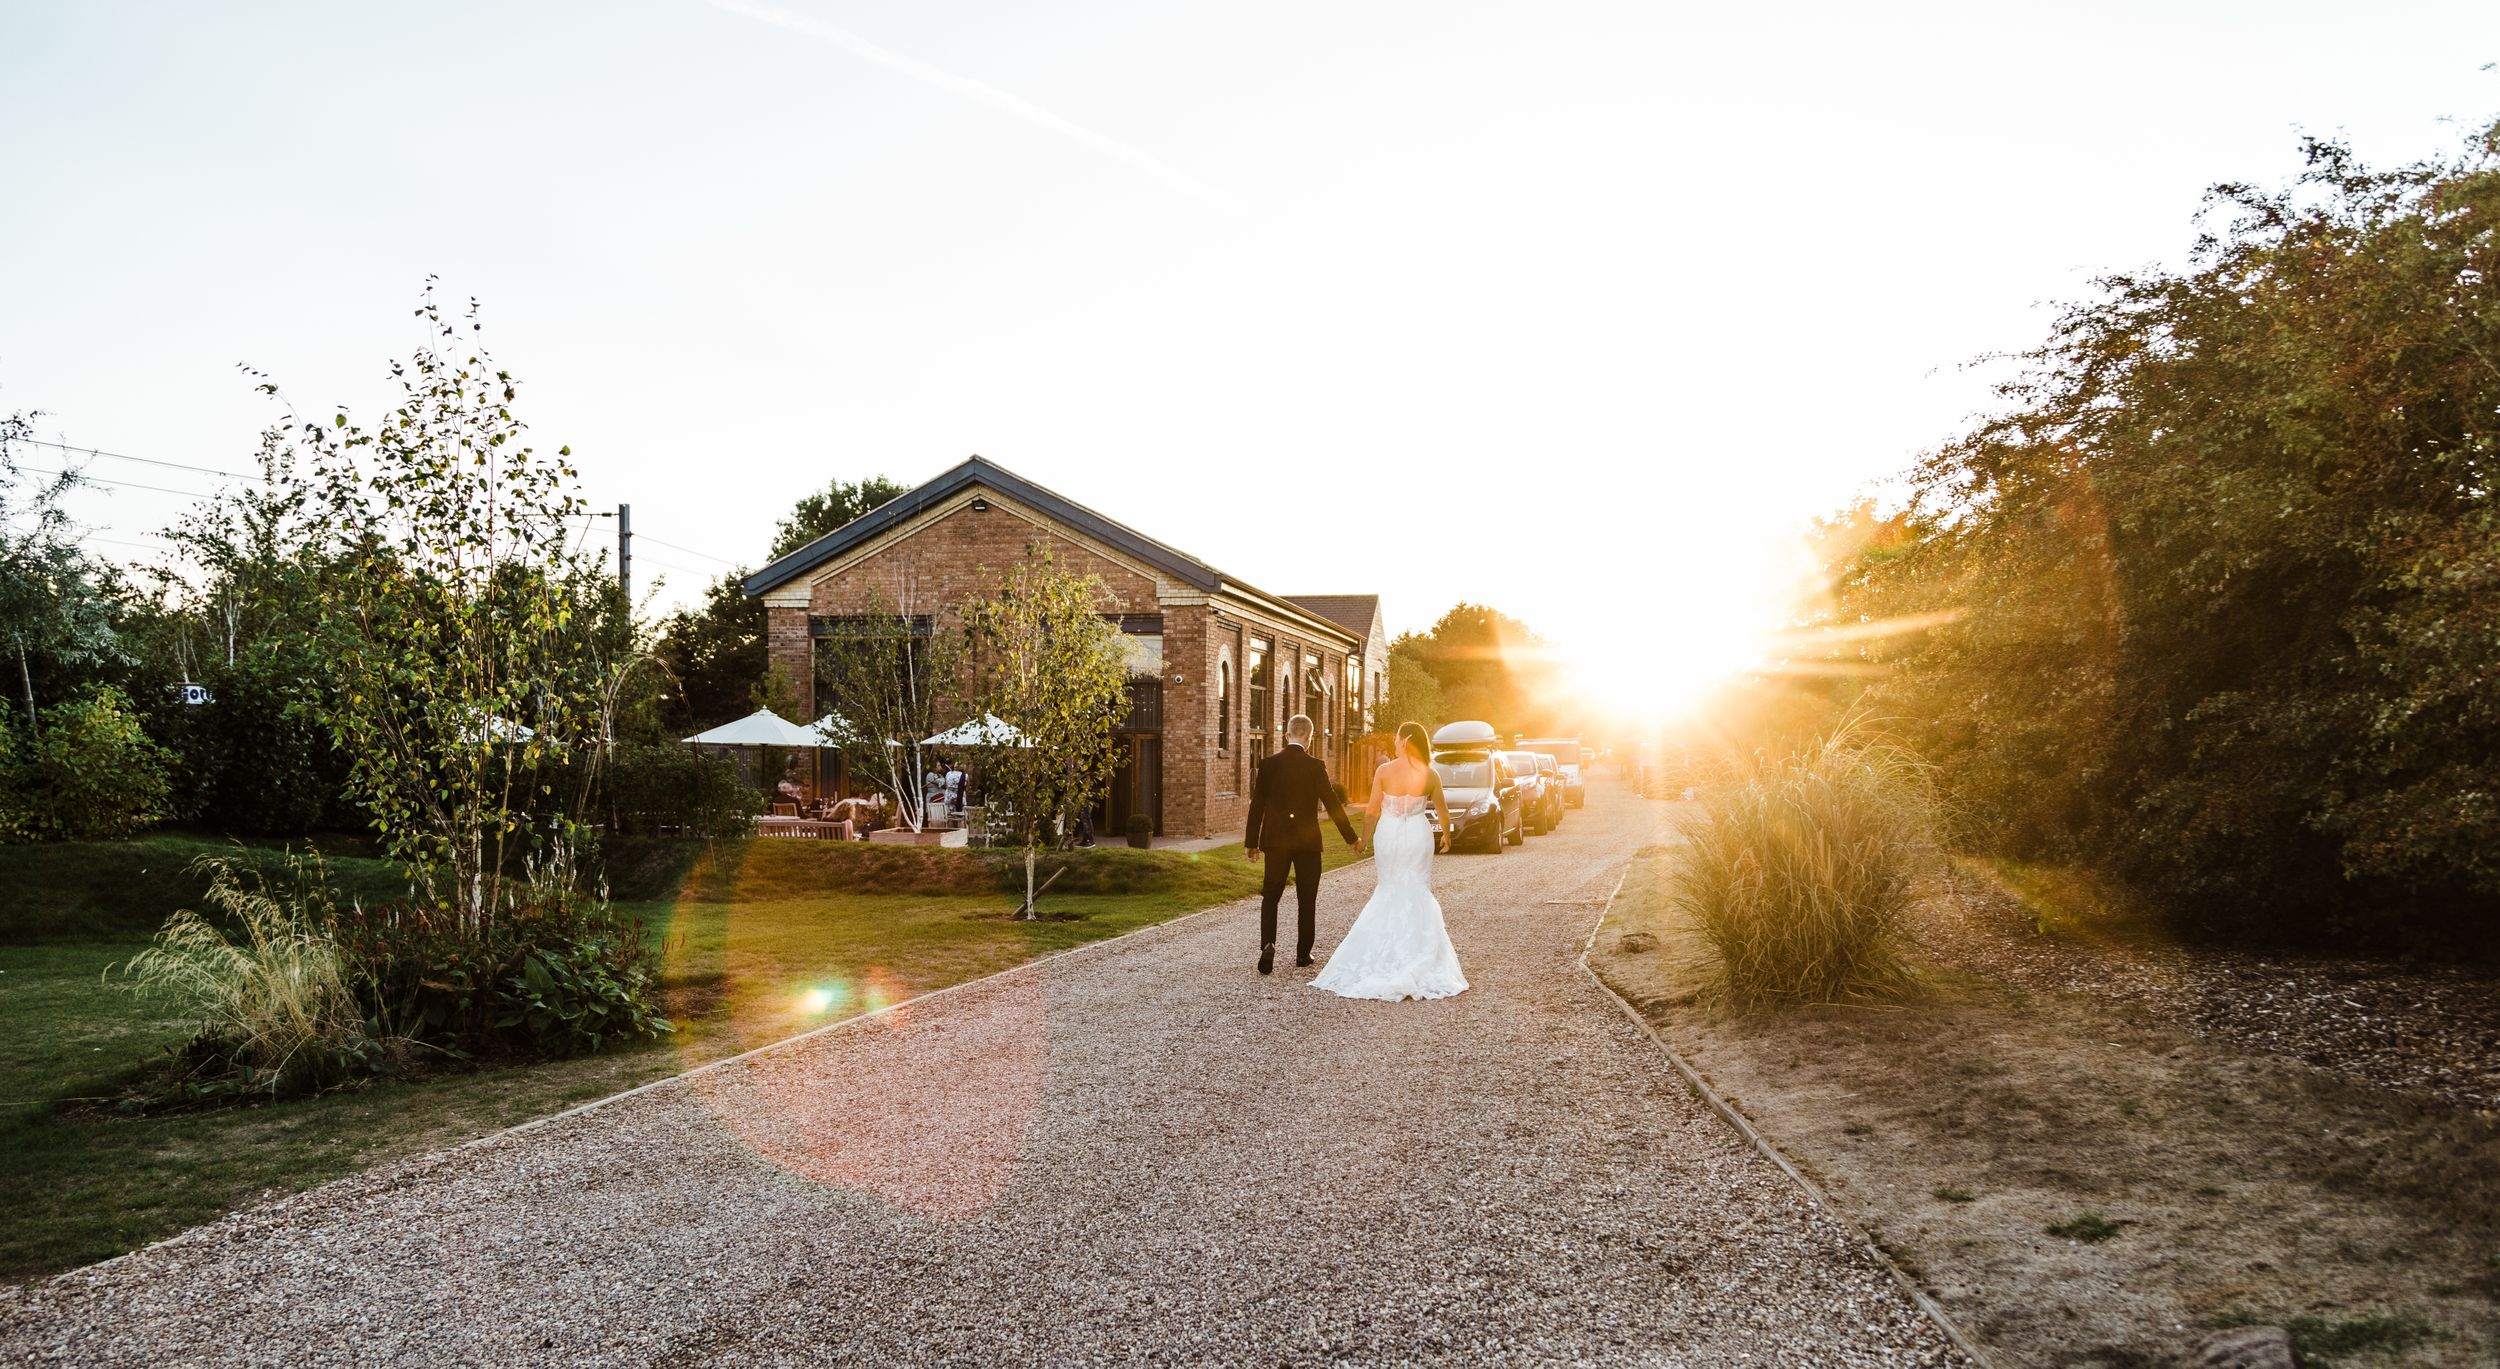 Wedding photography at The Carriage Hall, Plumtree